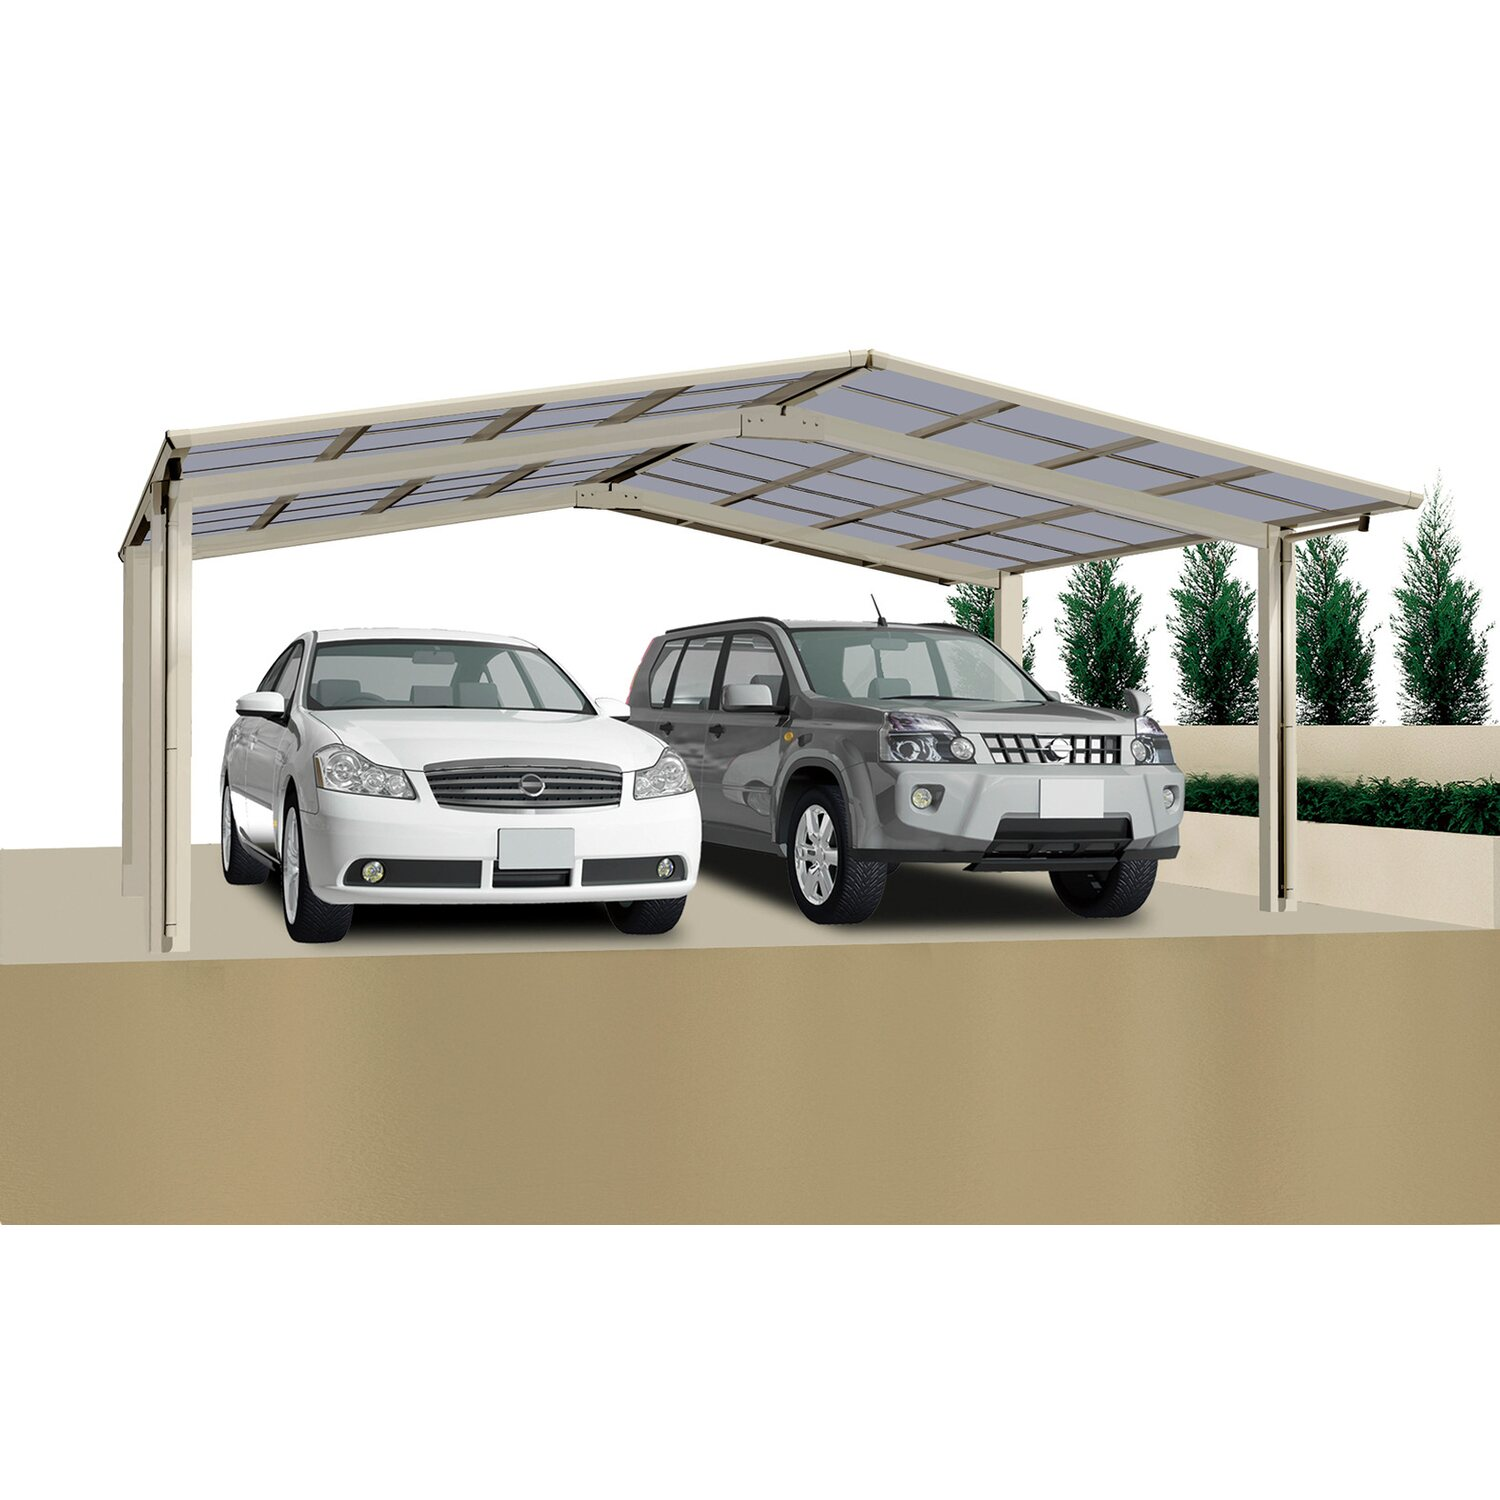 Ximax Carport Linea-60 M-Ausführung Edelstahl-Look kaufen bei OBI on patio designs, workshop designs, laundry room designs, porte cochere designs, horse barn designs, swimming pool designs, alcove designs, ground level designs, family room designs, basement designs, sunroom designs, driveway designs, porch designs, canopy designs, courtyard designs, garage designs, verandah designs, closet designs, newel post designs, shed designs,